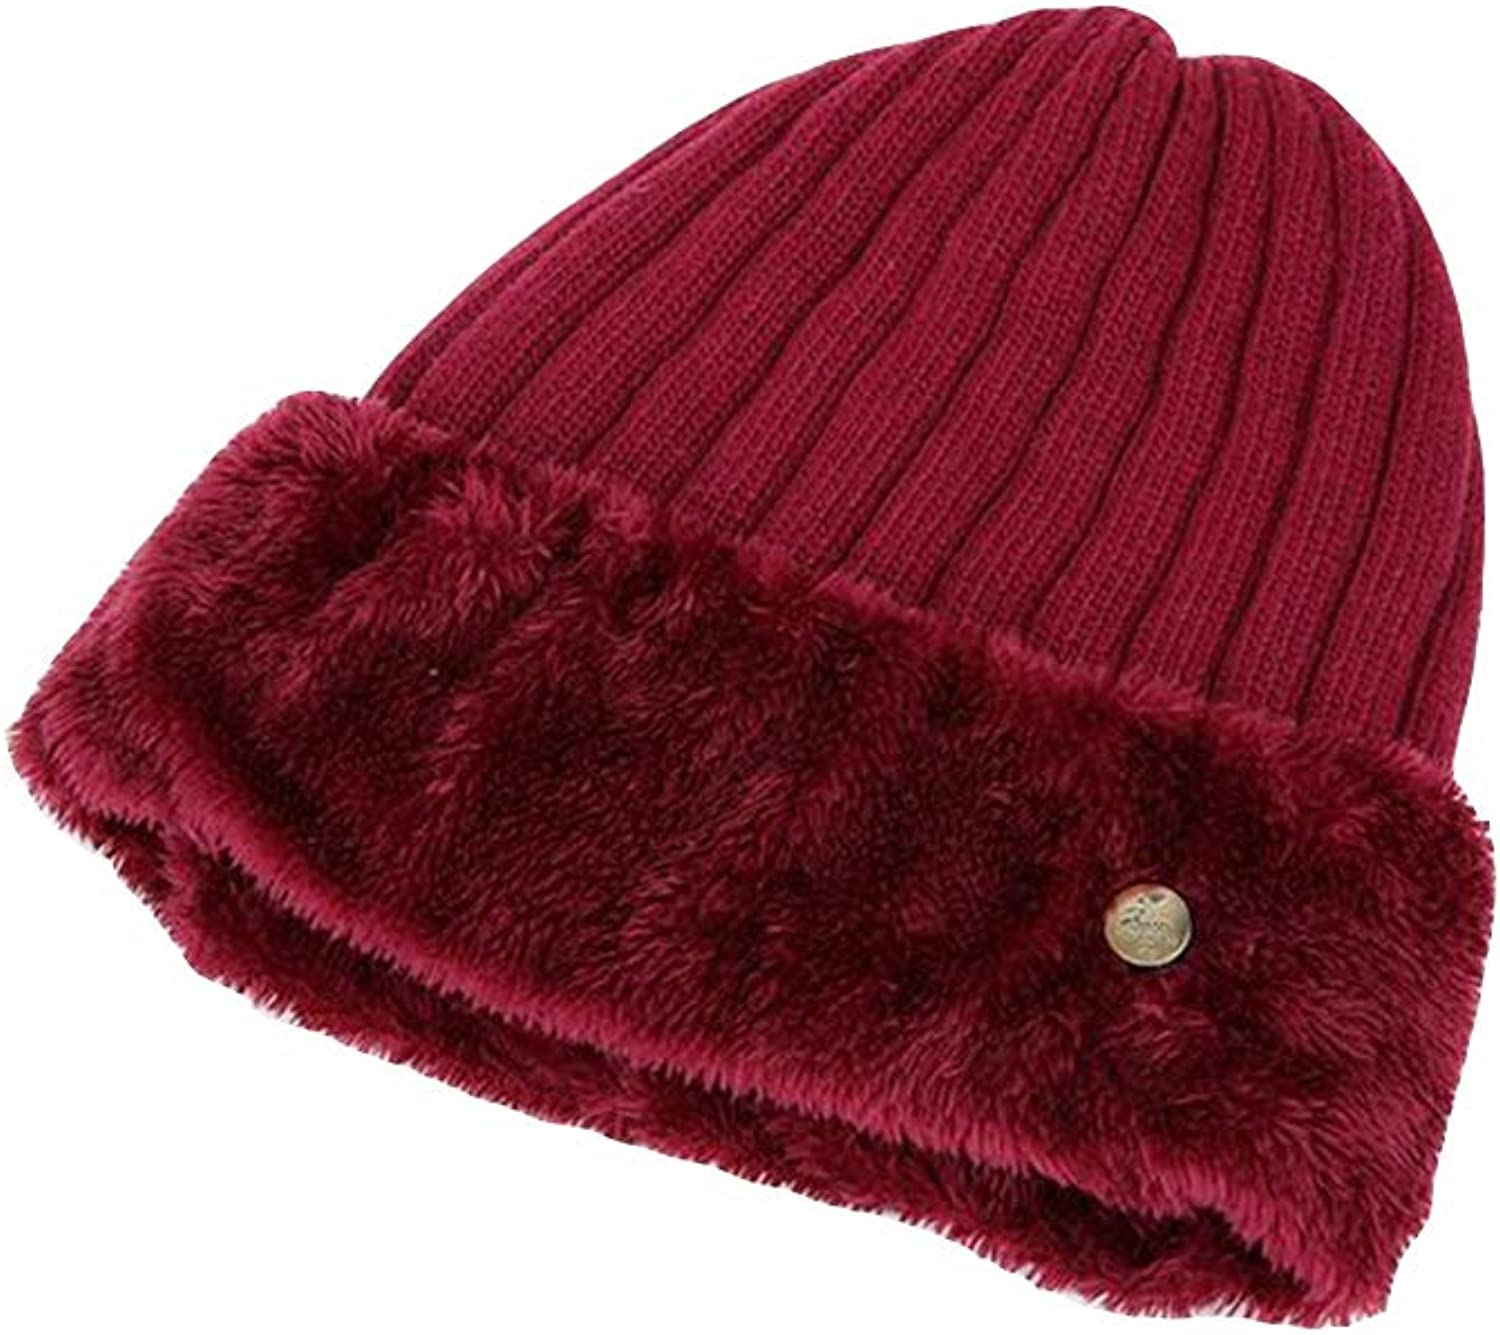 d7c4daaedfe5a1 Dall Dall Dall hat Hats Winter Warm Knitted Beanie Hat Skiing Men Outdoor  Sports (color RED) 67c896